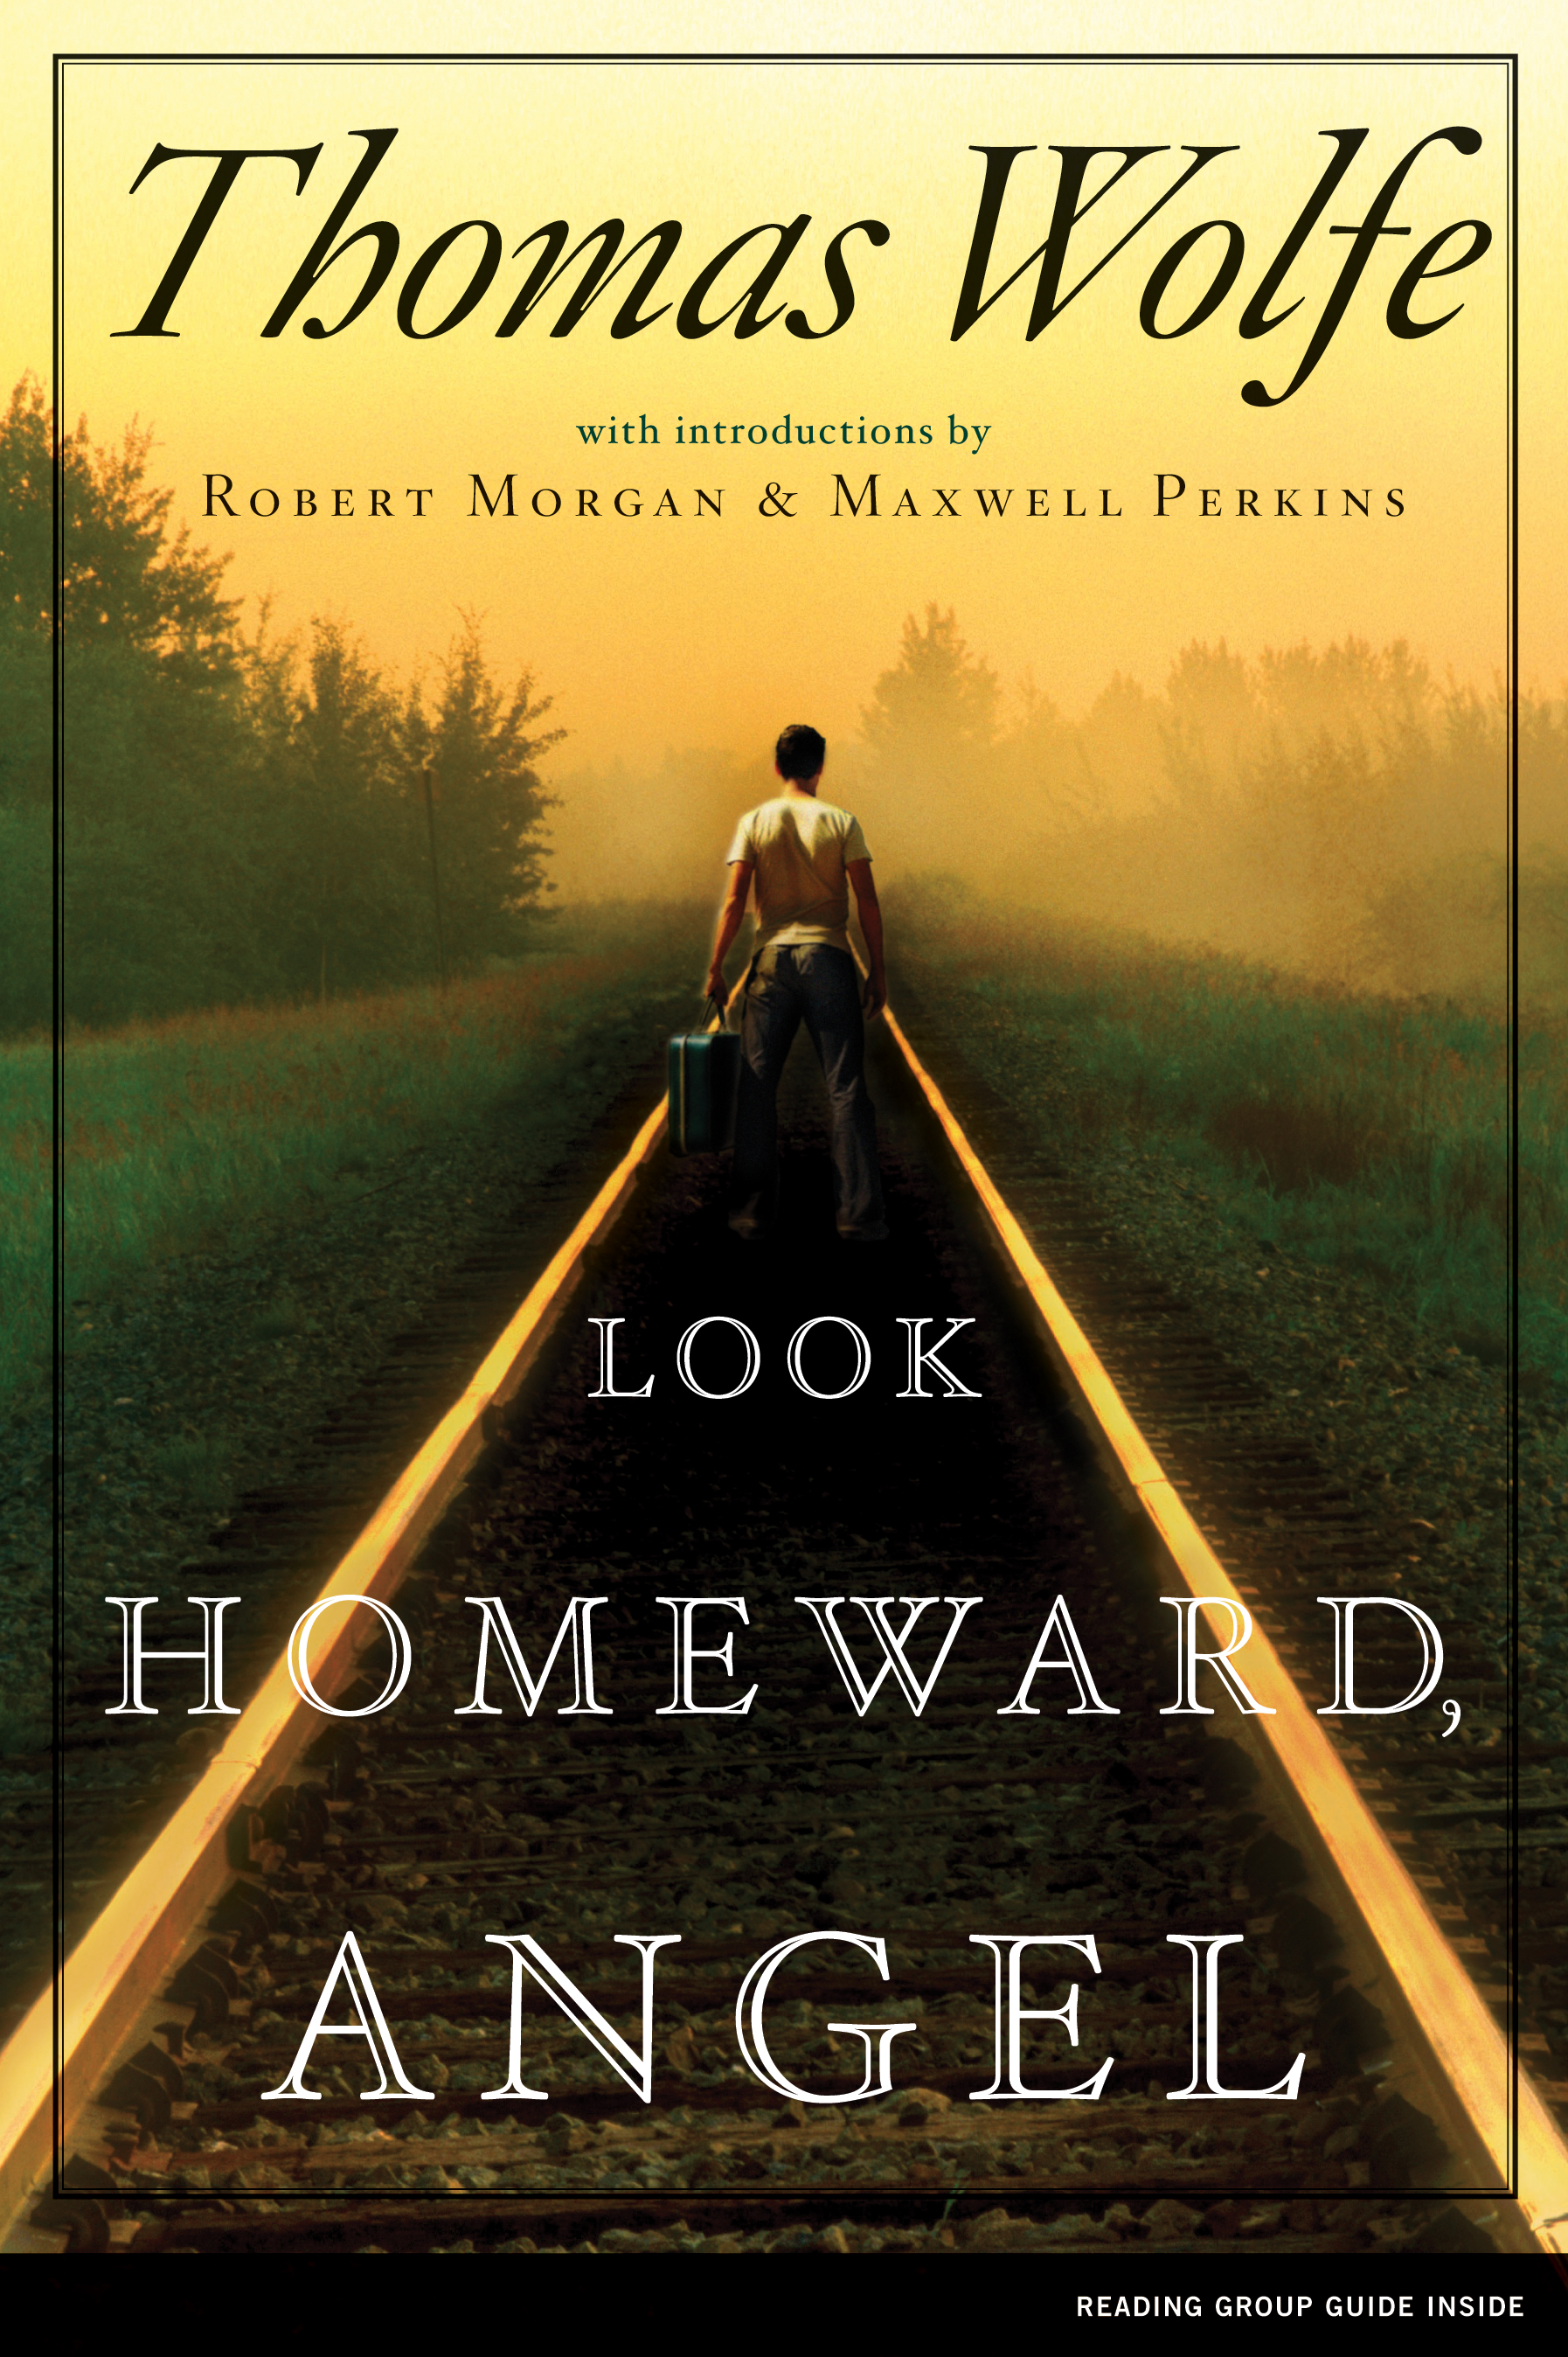 Look Homeward, Angel | Book by Thomas Wolfe | Official